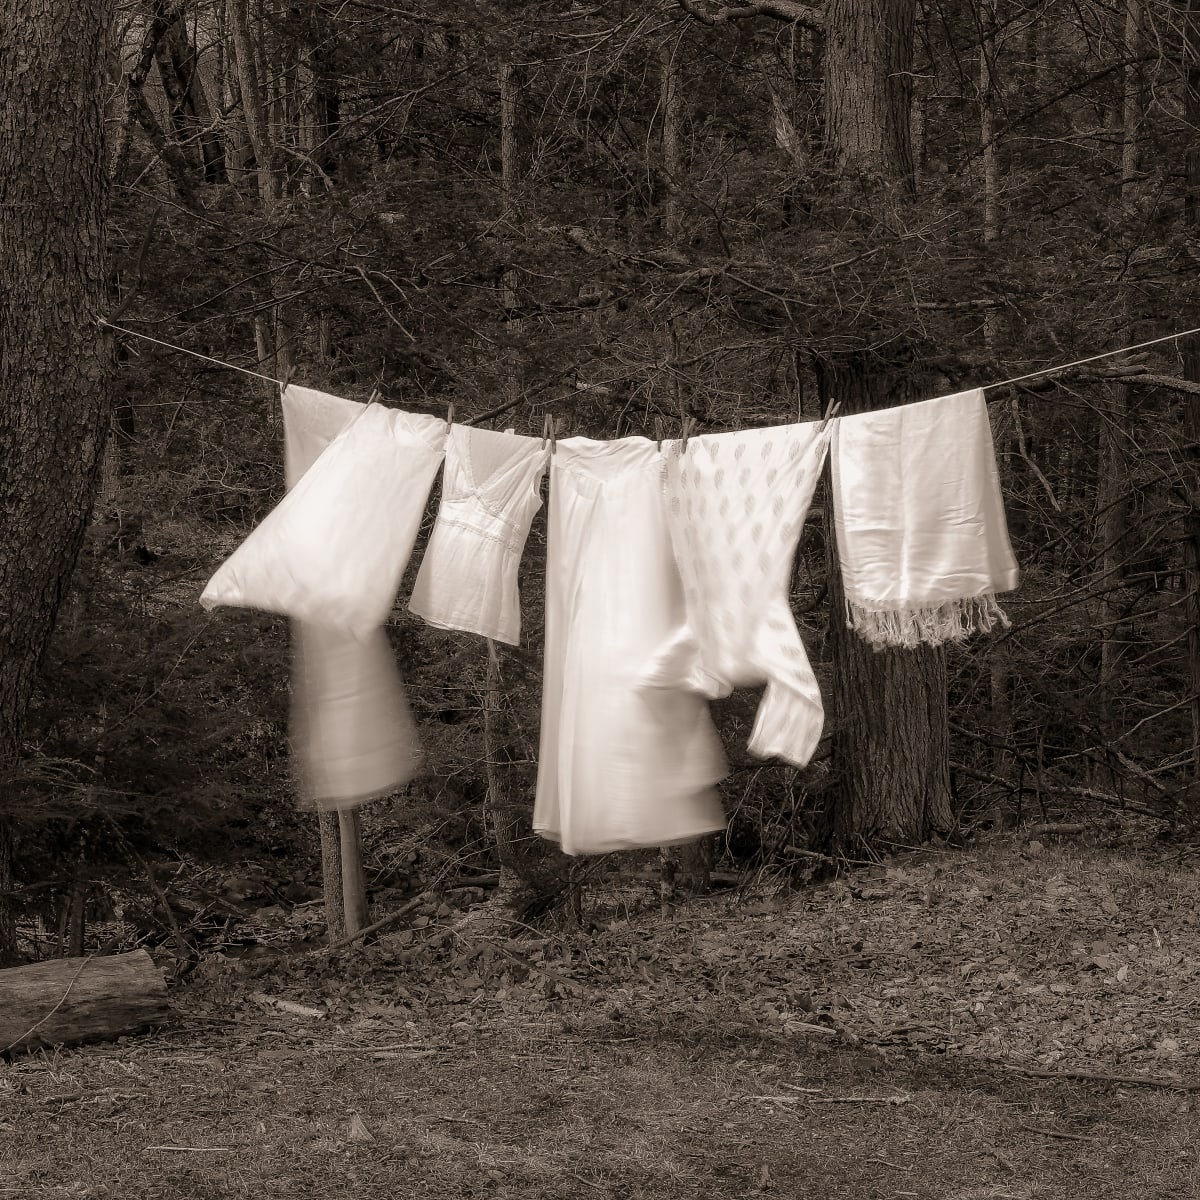 Laundry day by Kelly Sinclair